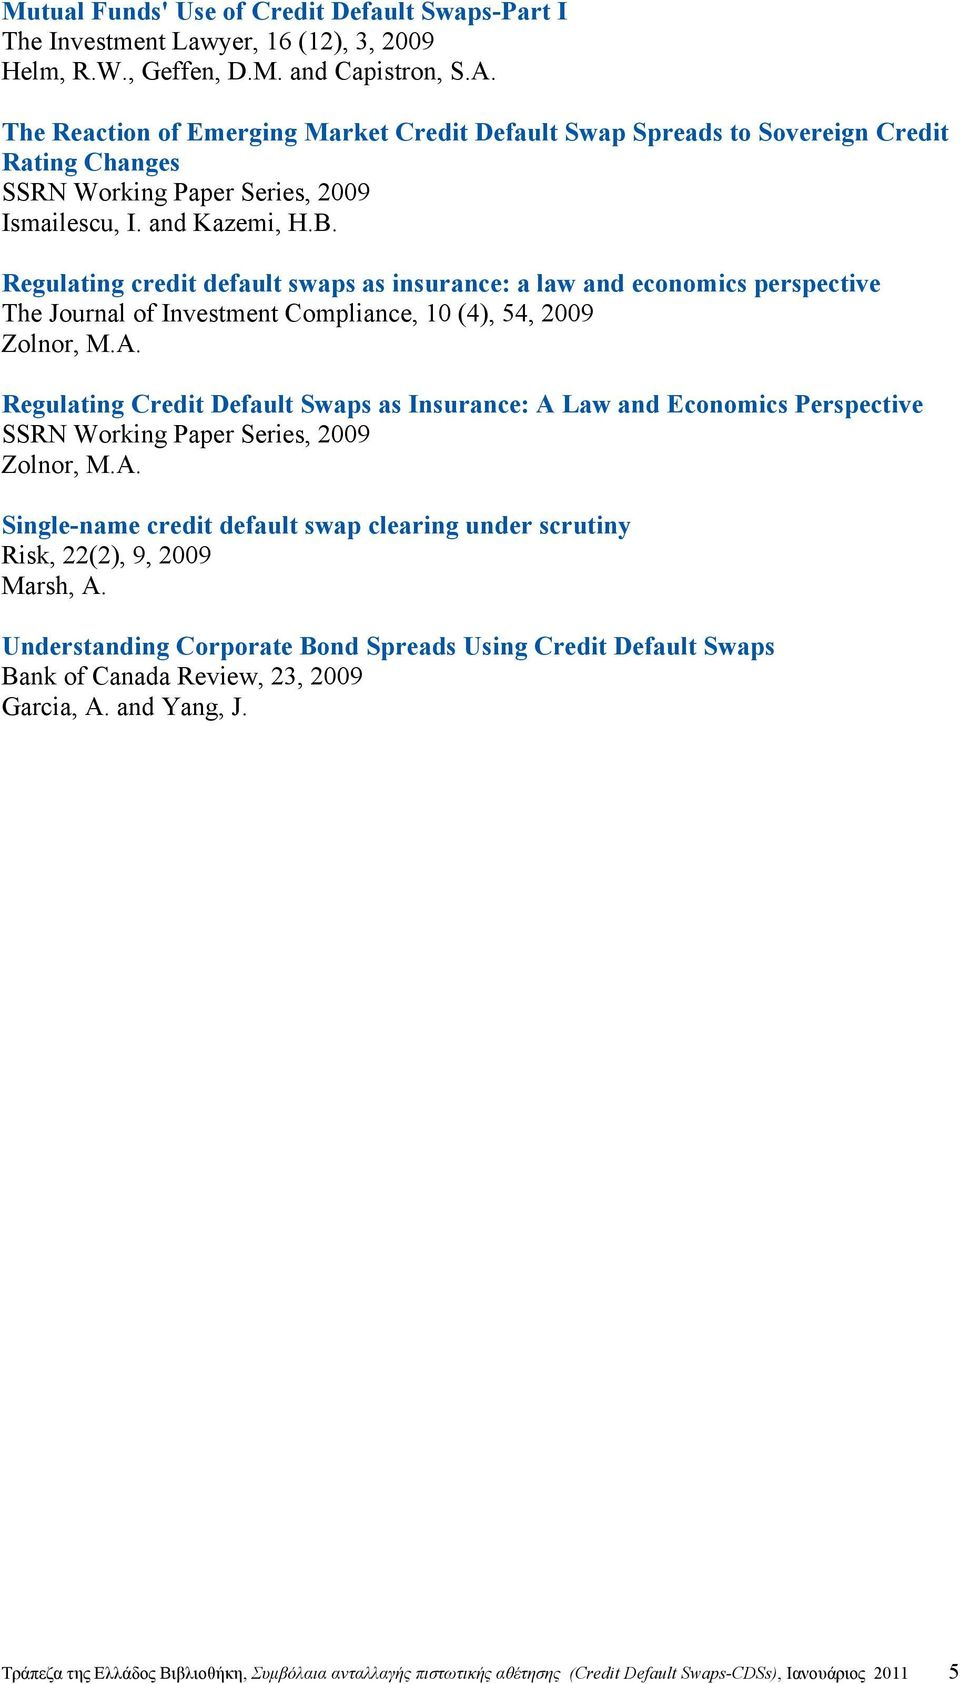 Regulating credit default swaps as insurance: a law and economics perspective The Journal of Investment Compliance, 10 (4), 54, 2009 Zolnor, M.A.